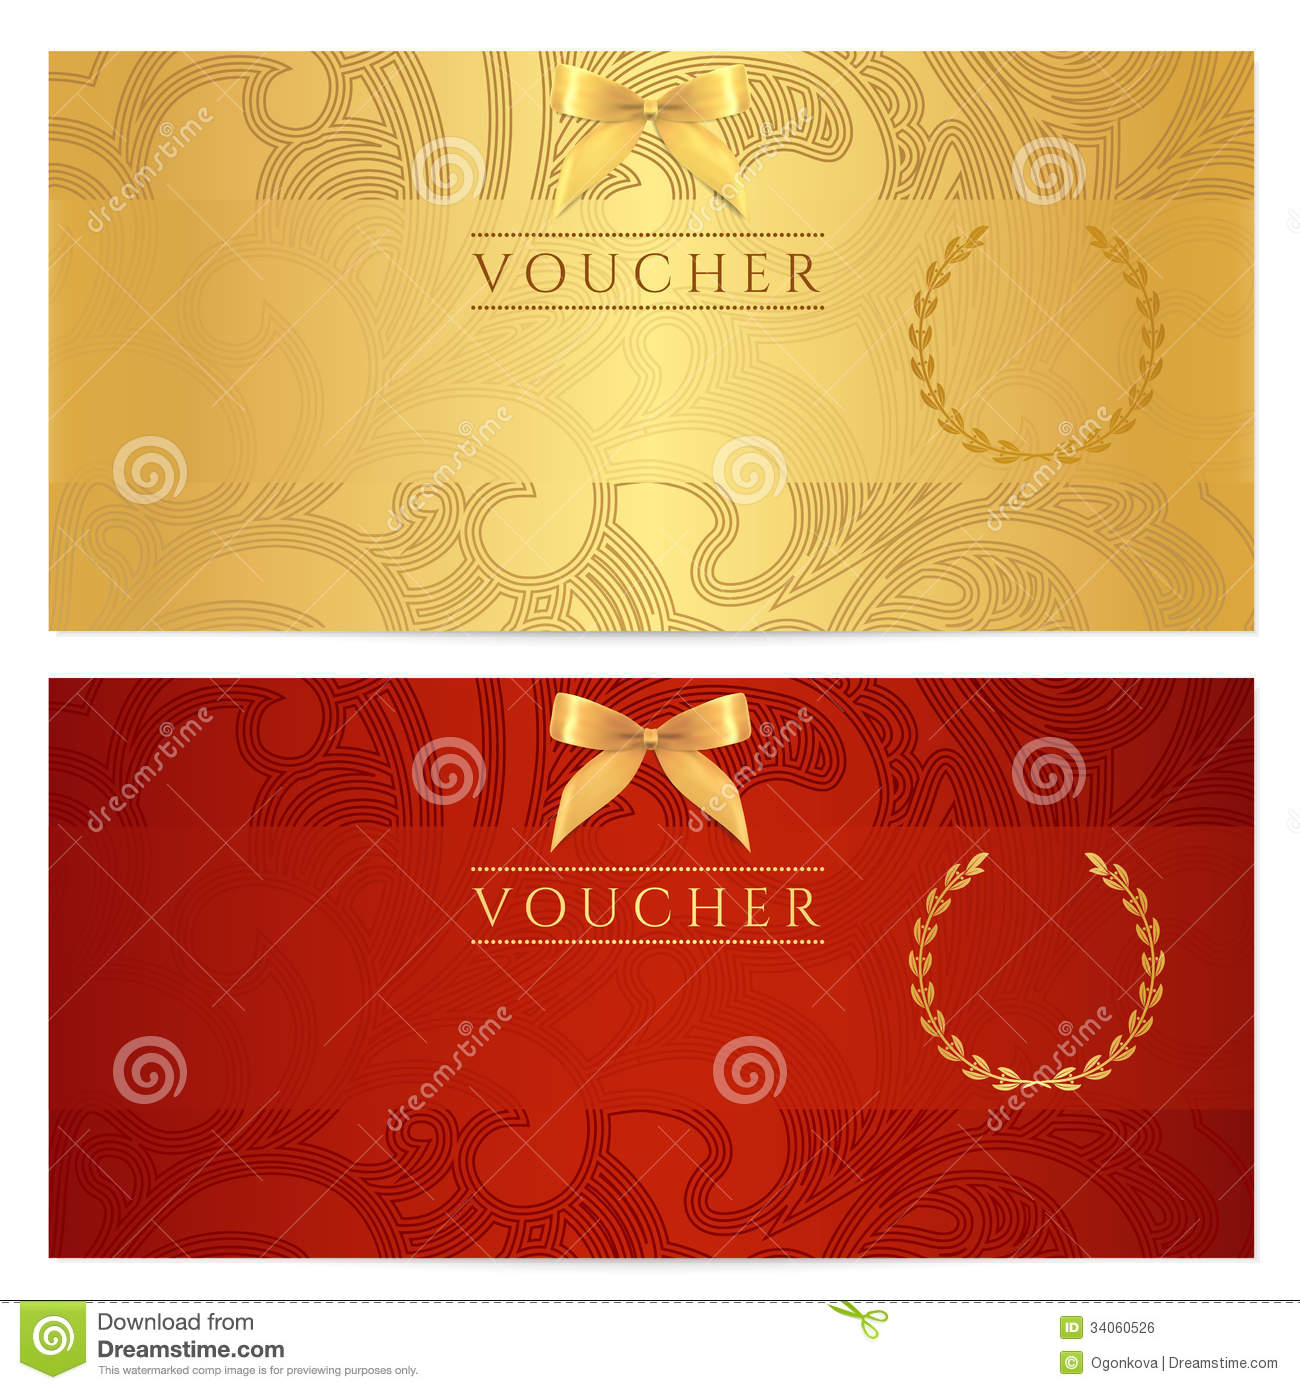 Voucher Gift Certificate Coupon Ticket Pattern Royalty